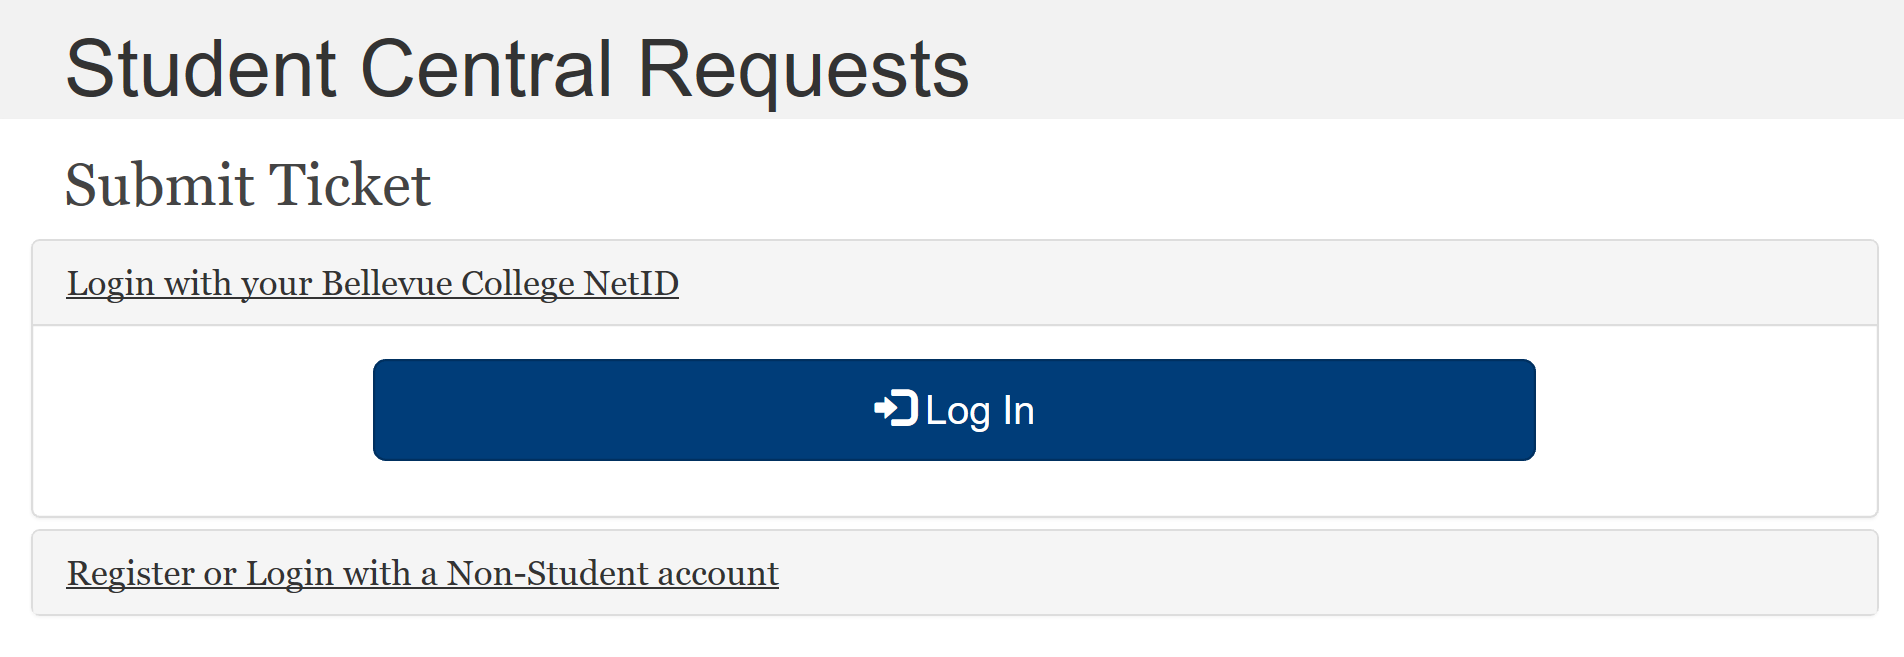 Student Central Request Log In Image